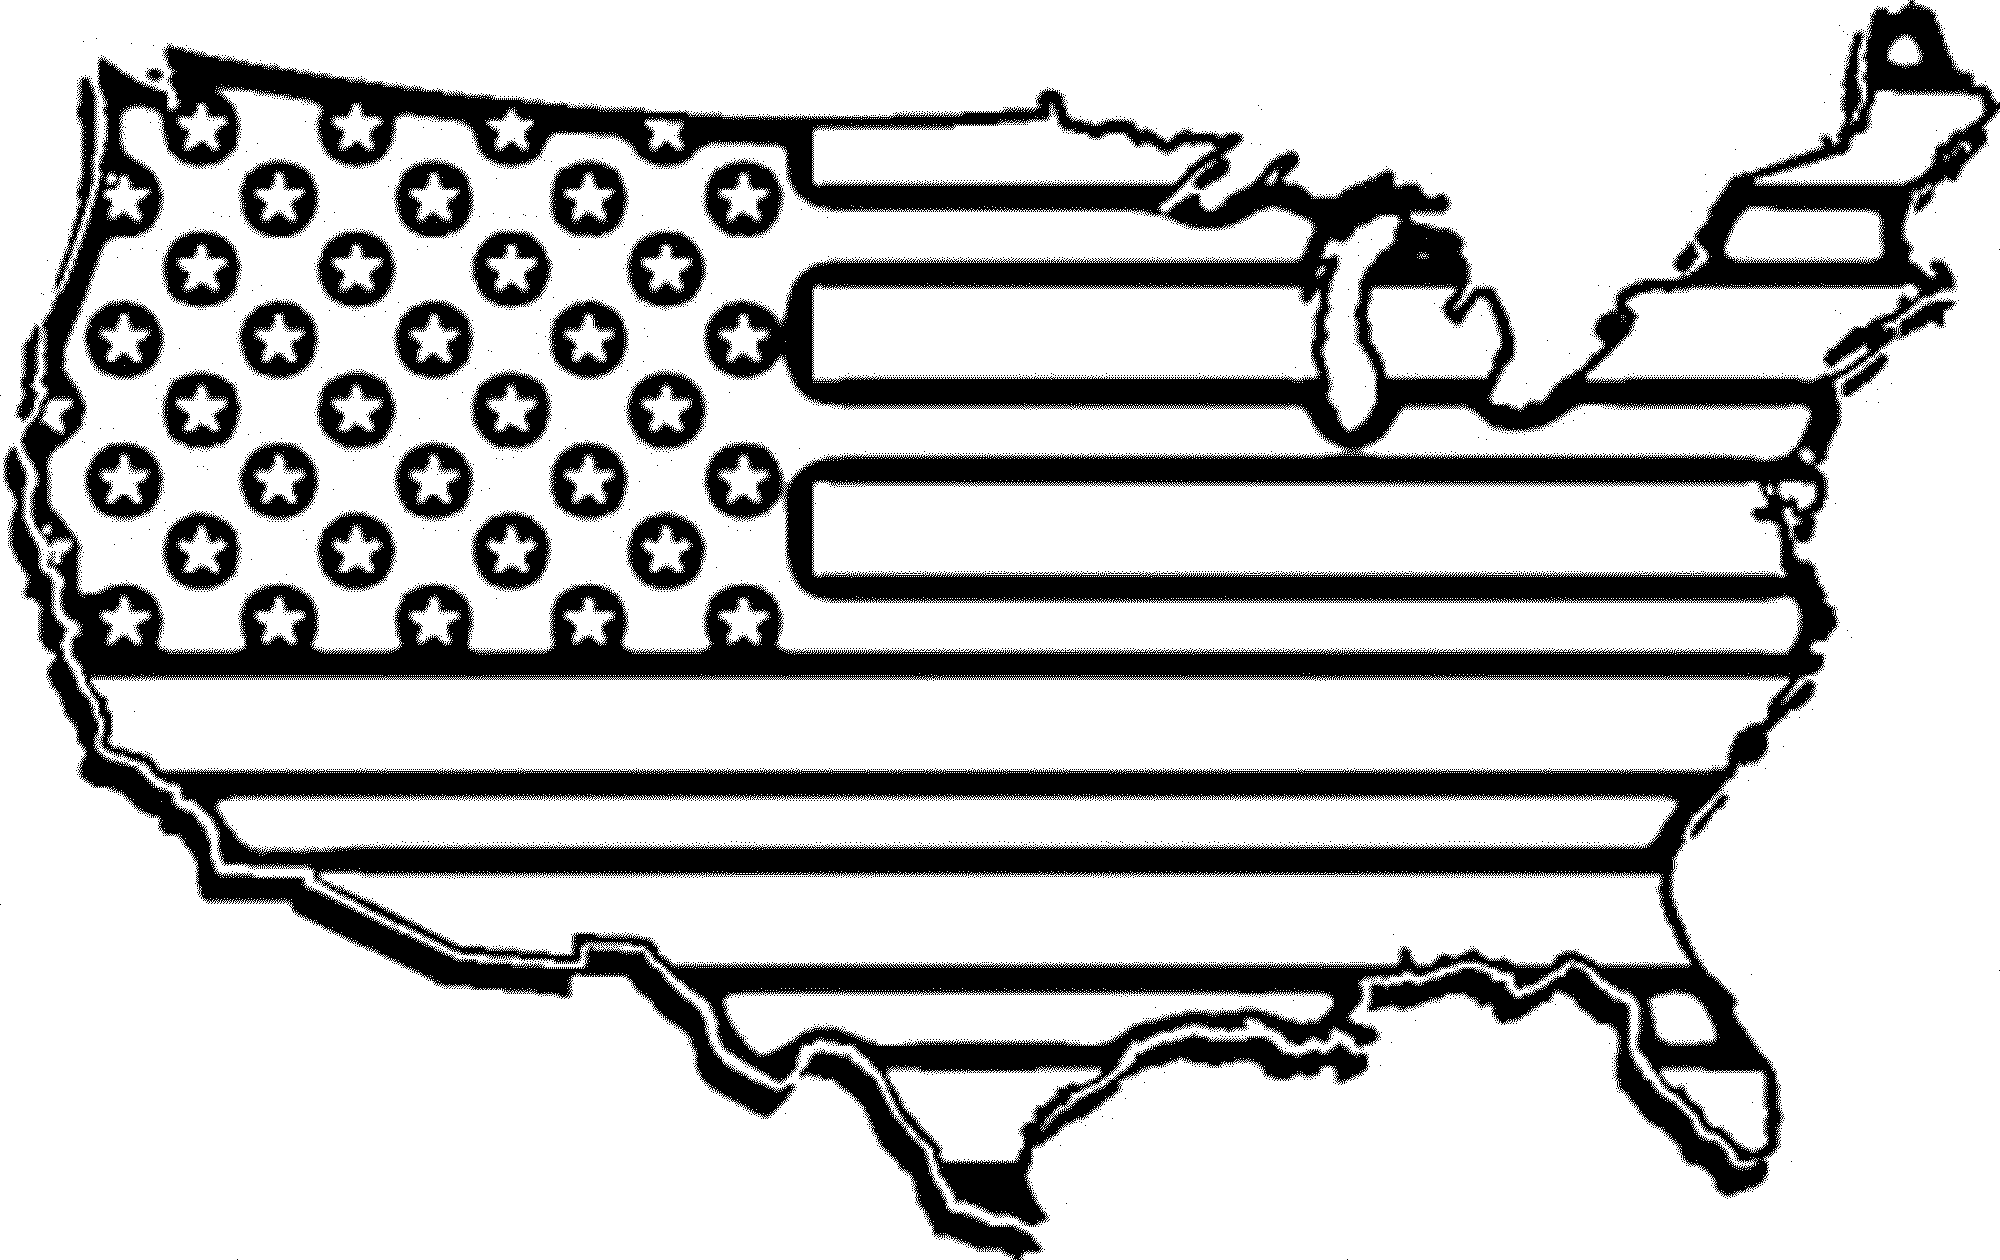 american flag coloring book american flag coloring pages 2020 z31 coloring page coloring american book flag